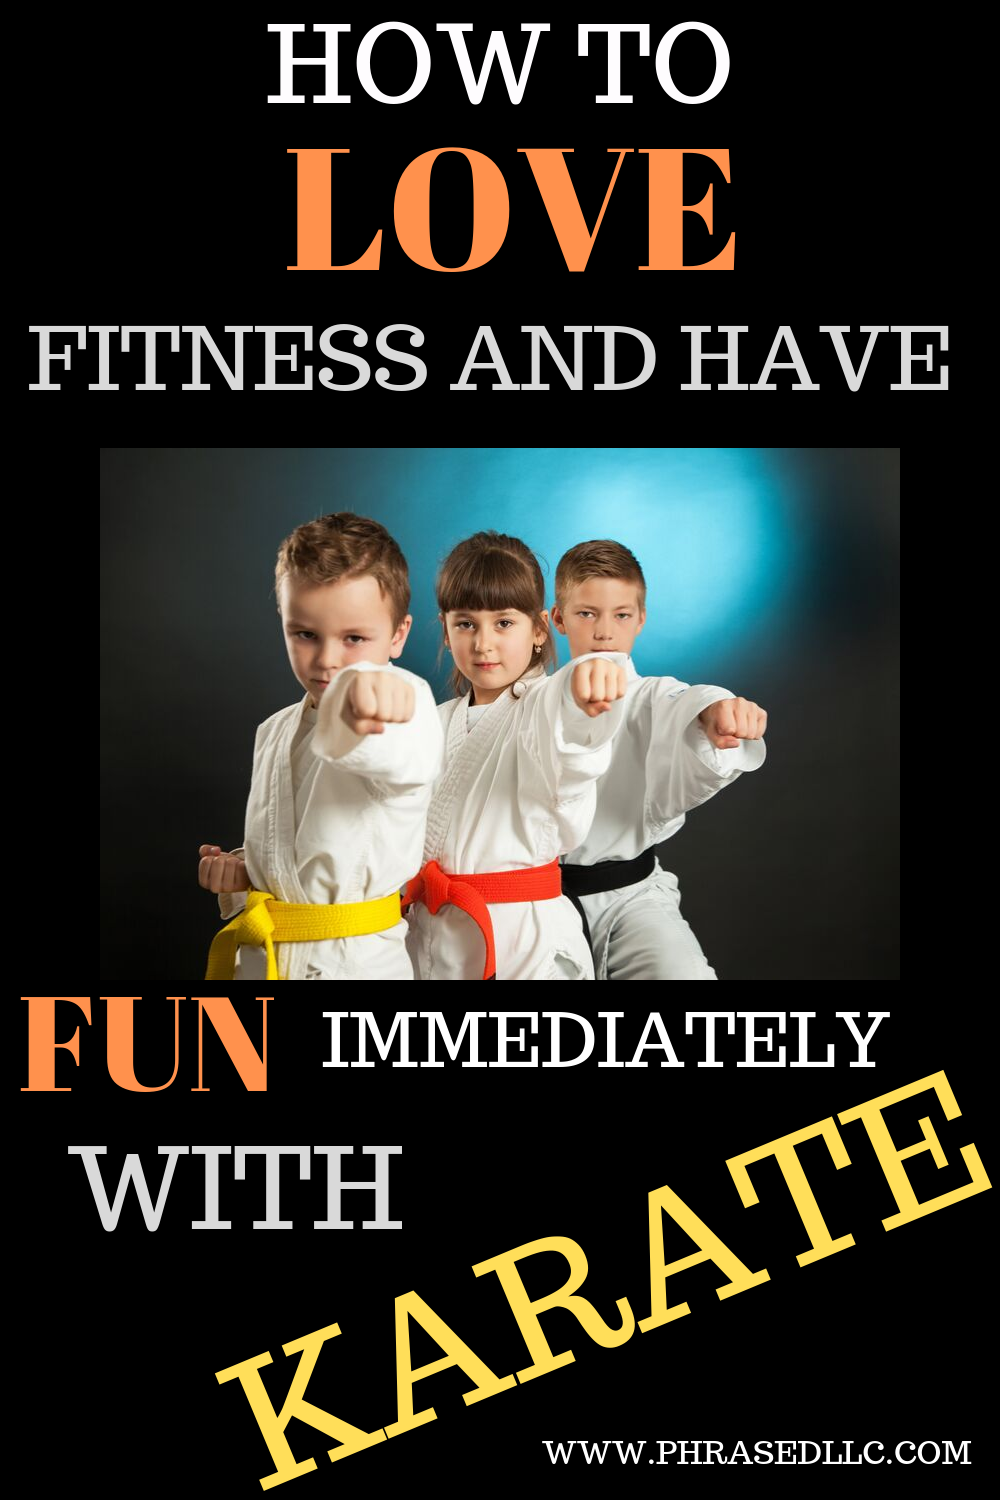 Learn how to love fitness and have fun immediately with karate at OKS Macon